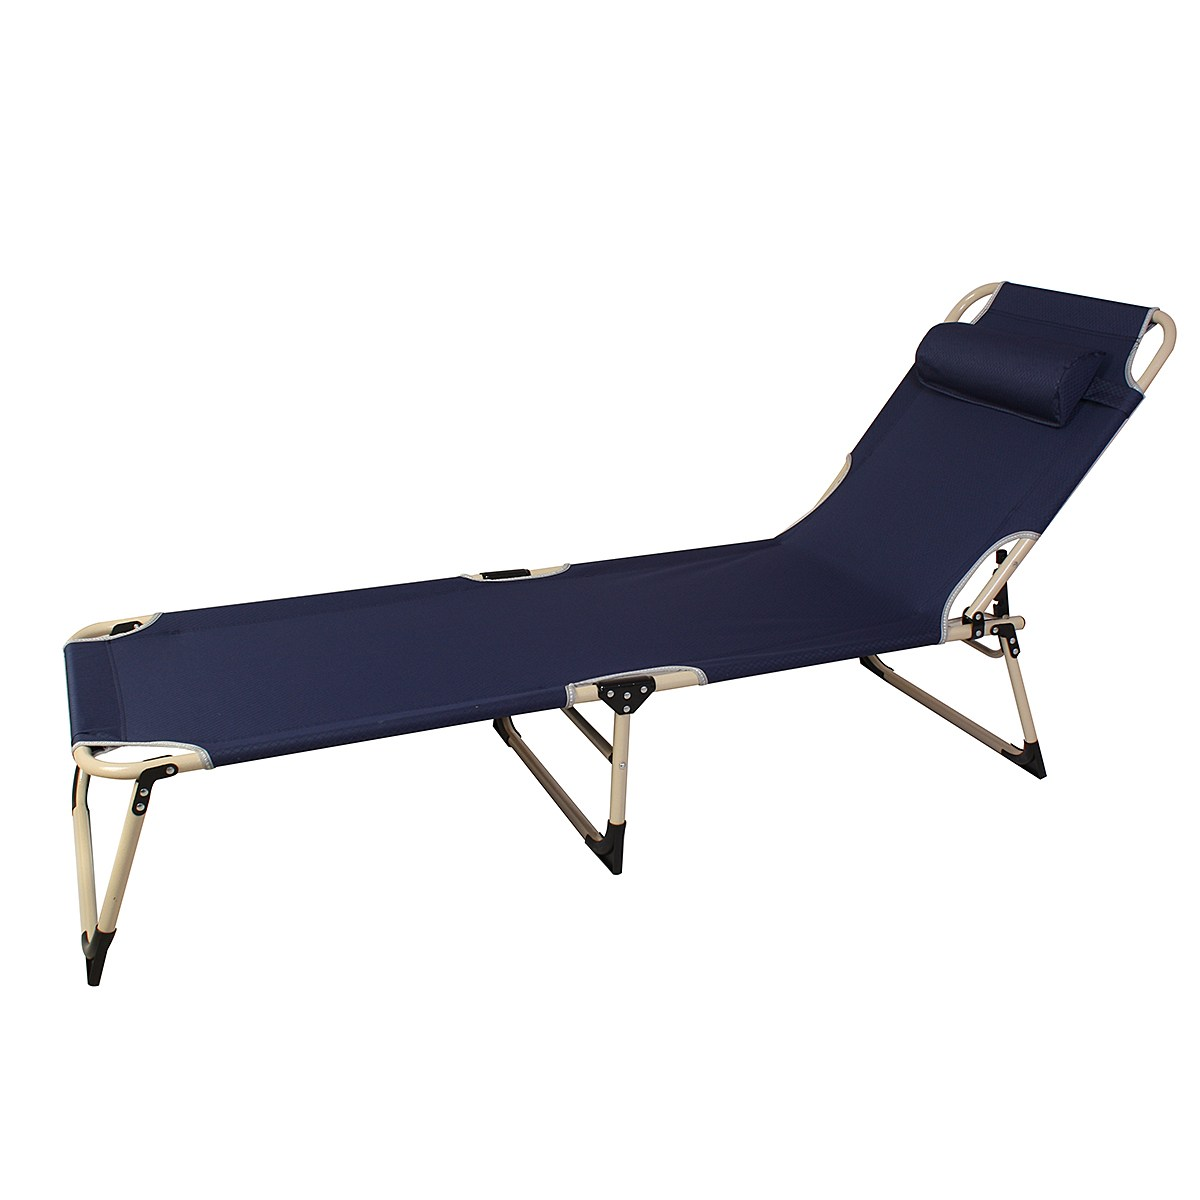 Outdoor camping Fold-Flat Sun Lounger Garden Bed Chair Recliner Beach Sea Pool Seat With Pillow 2 x folding reclining garden chair outdoor sun lounger deck camping beach lounge green